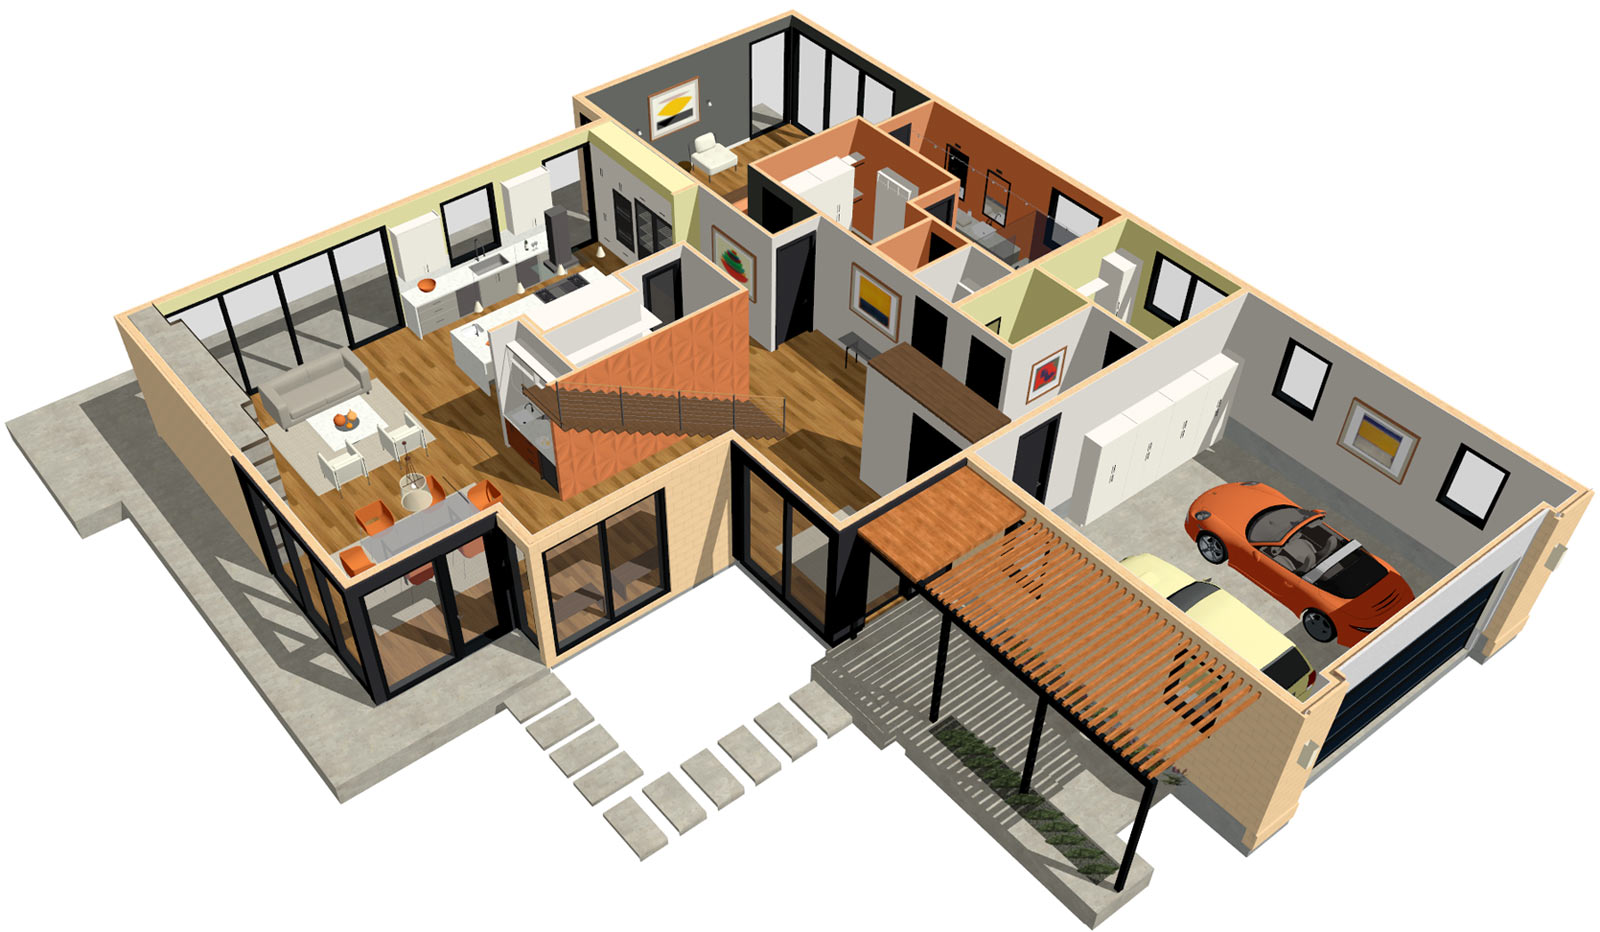 Home designer architectural for Plan 3d online home design free